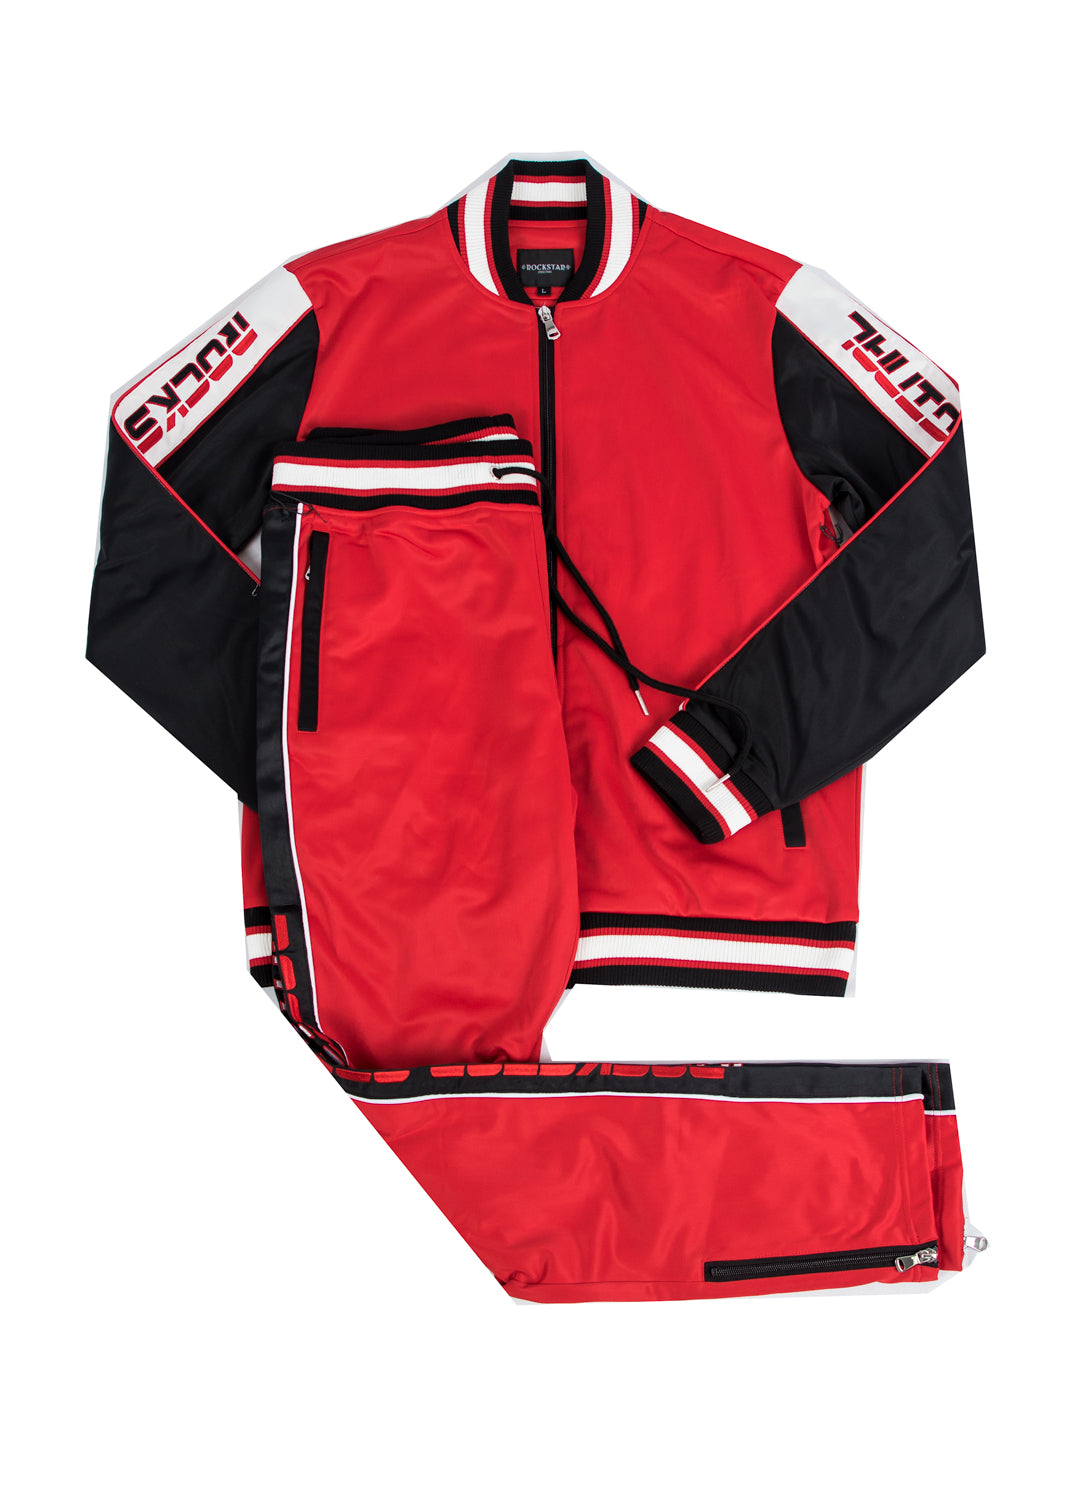 Kids Beck 4.0 (Red) Track Suit